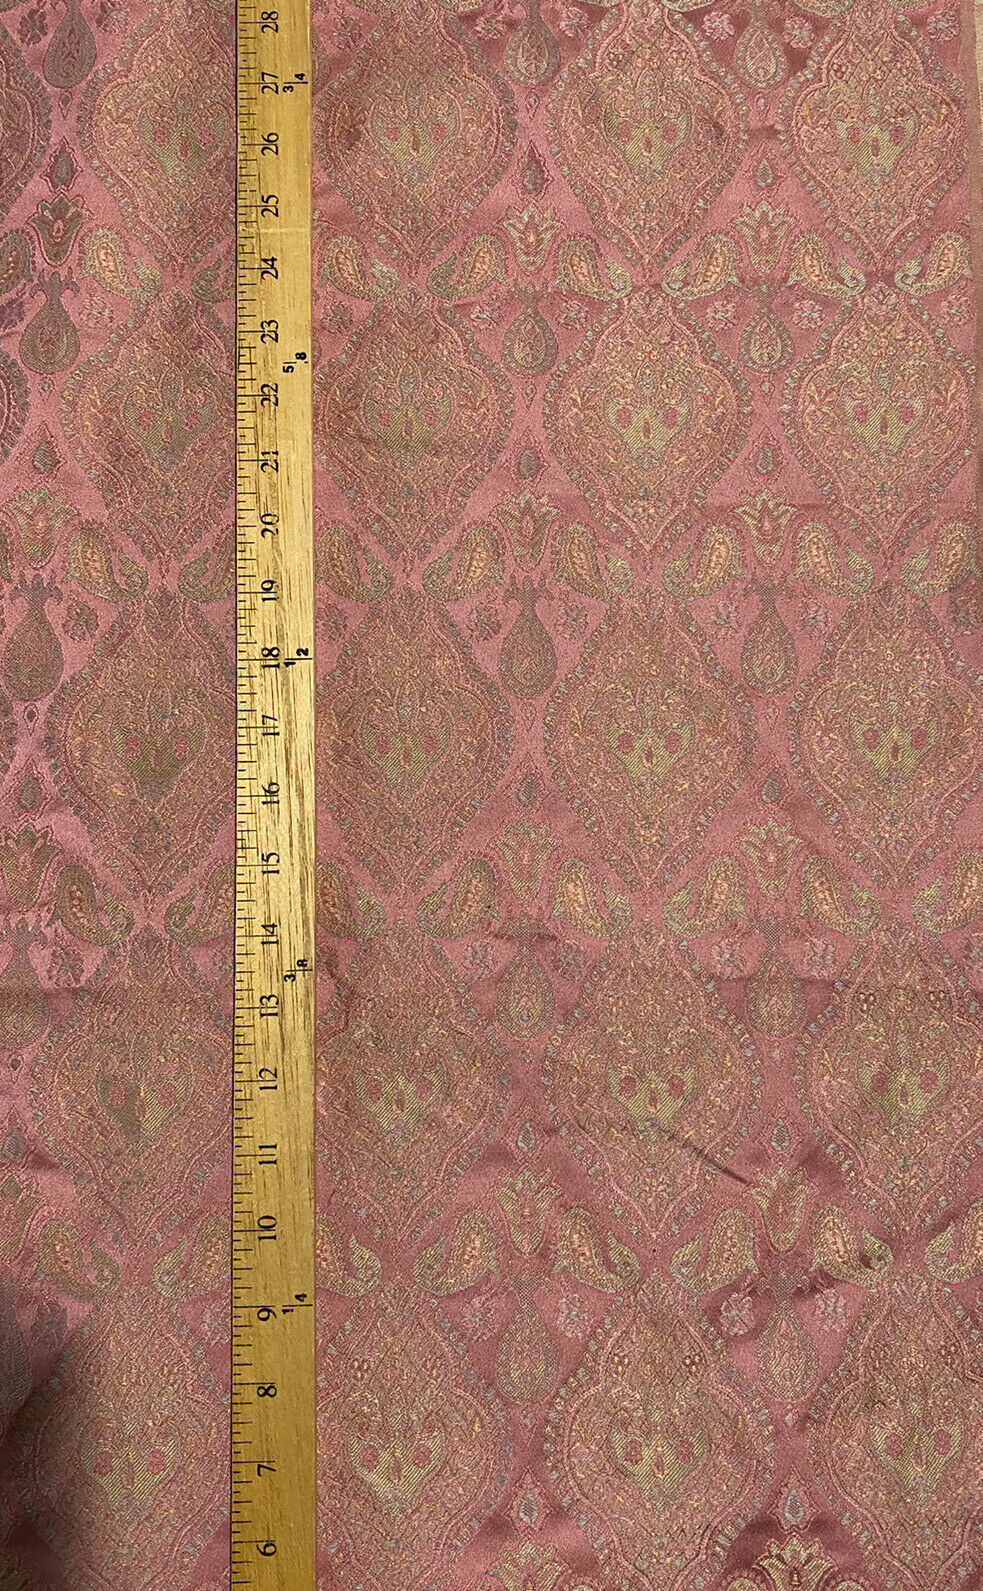 NEW Brocade Satin Damask Decorating & Upholstery Fabric- Antique Pink